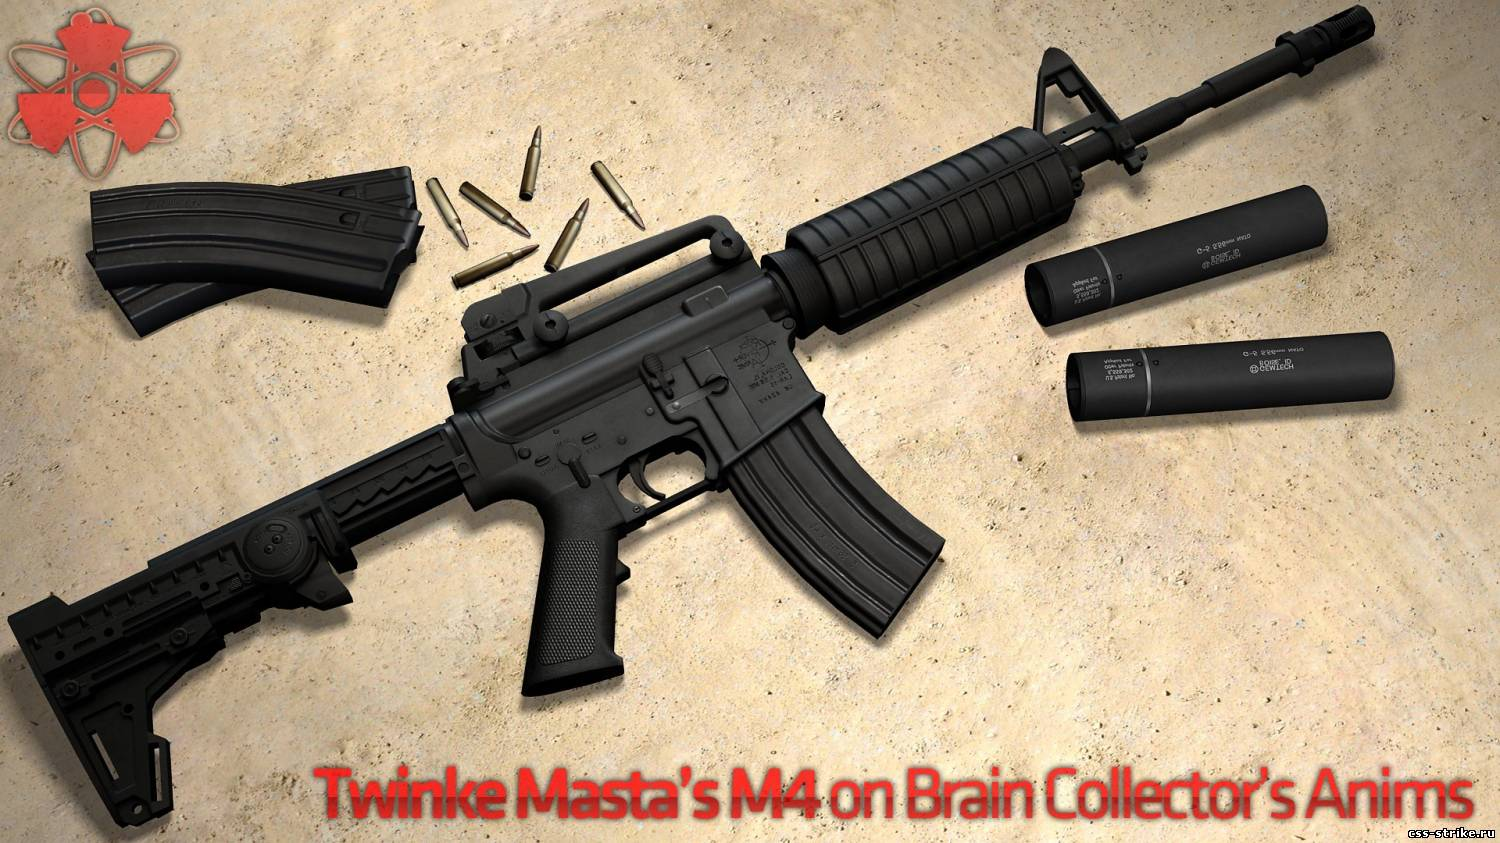 скачать Twinke Masta's M4 on Brain Collector's Anims бесплатно